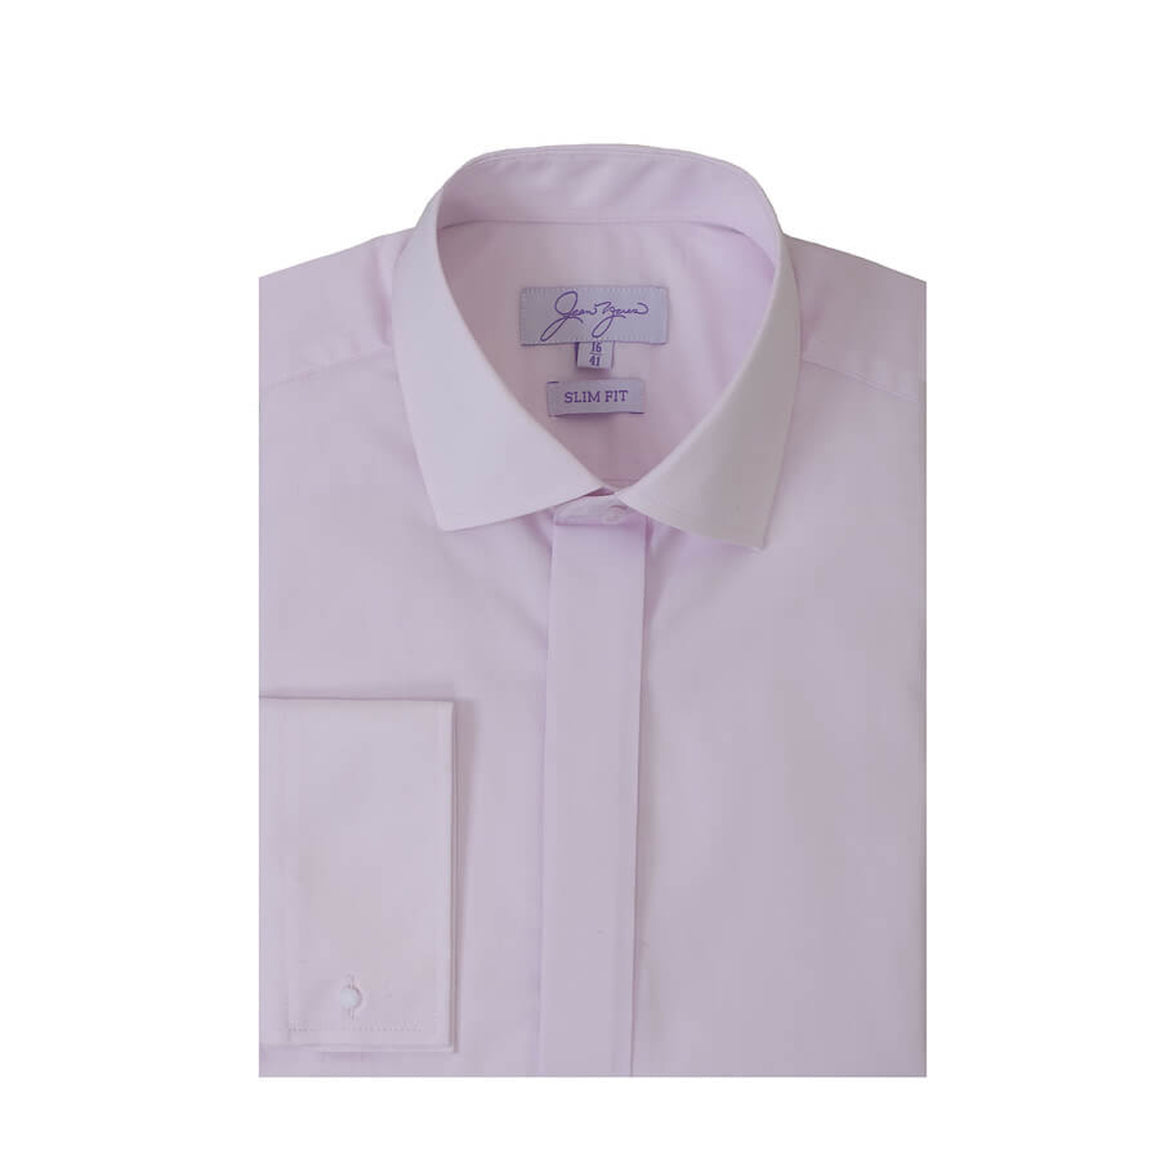 Plain Swept Collar Slim Fit Shirt for Men in Pink